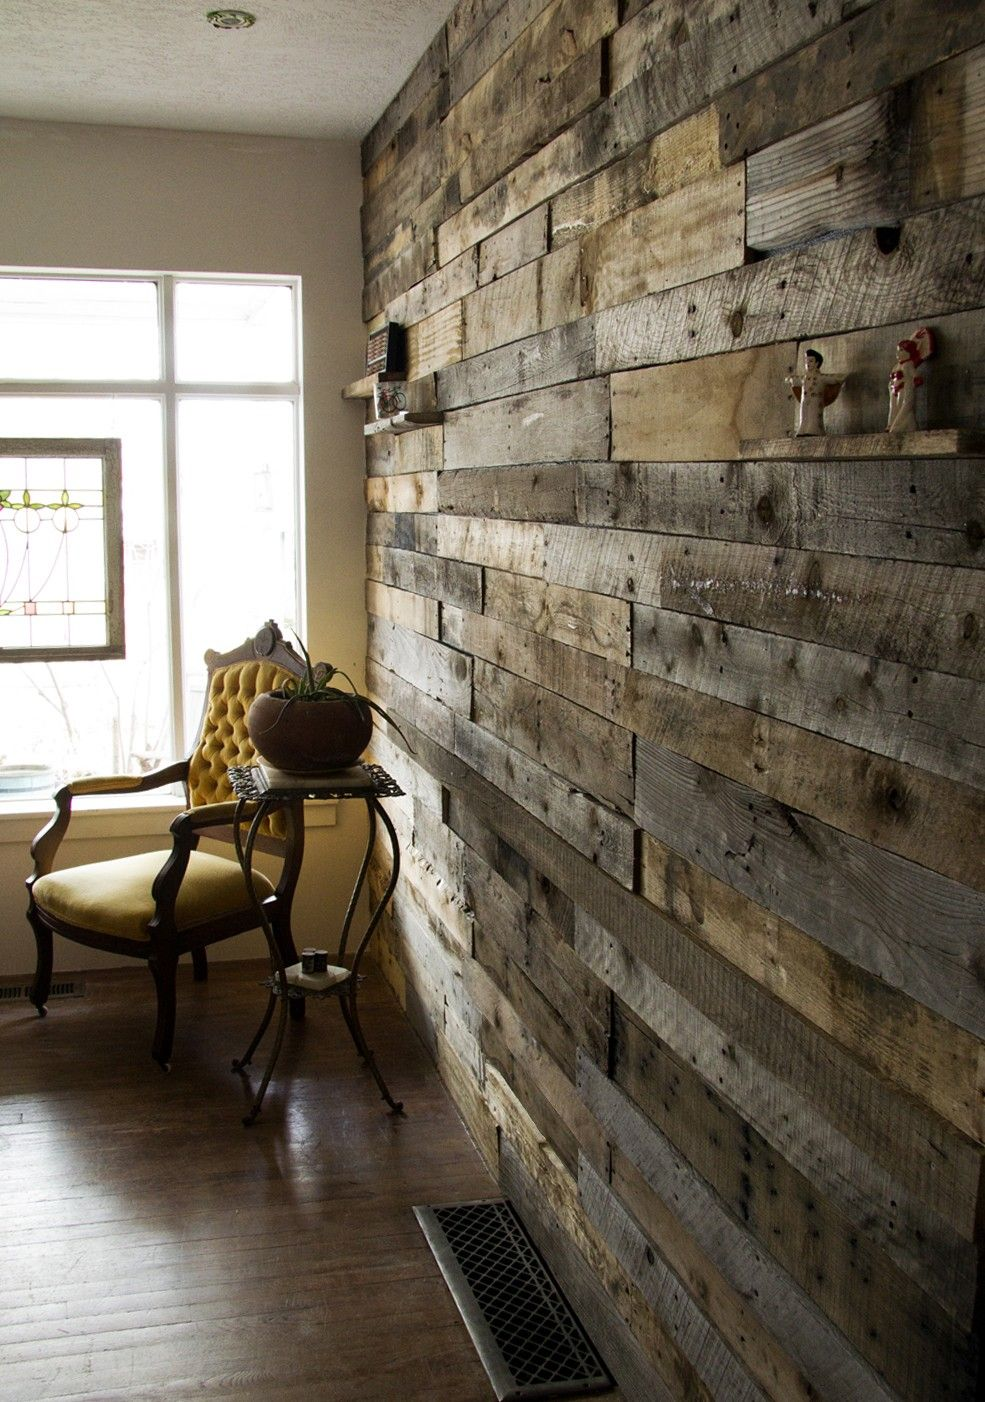 100 Diy Pallet Wall Ideas For Your Apartment The Urban Interior Diy Pallet Wall Wood Pallet Wall Pallet Wall